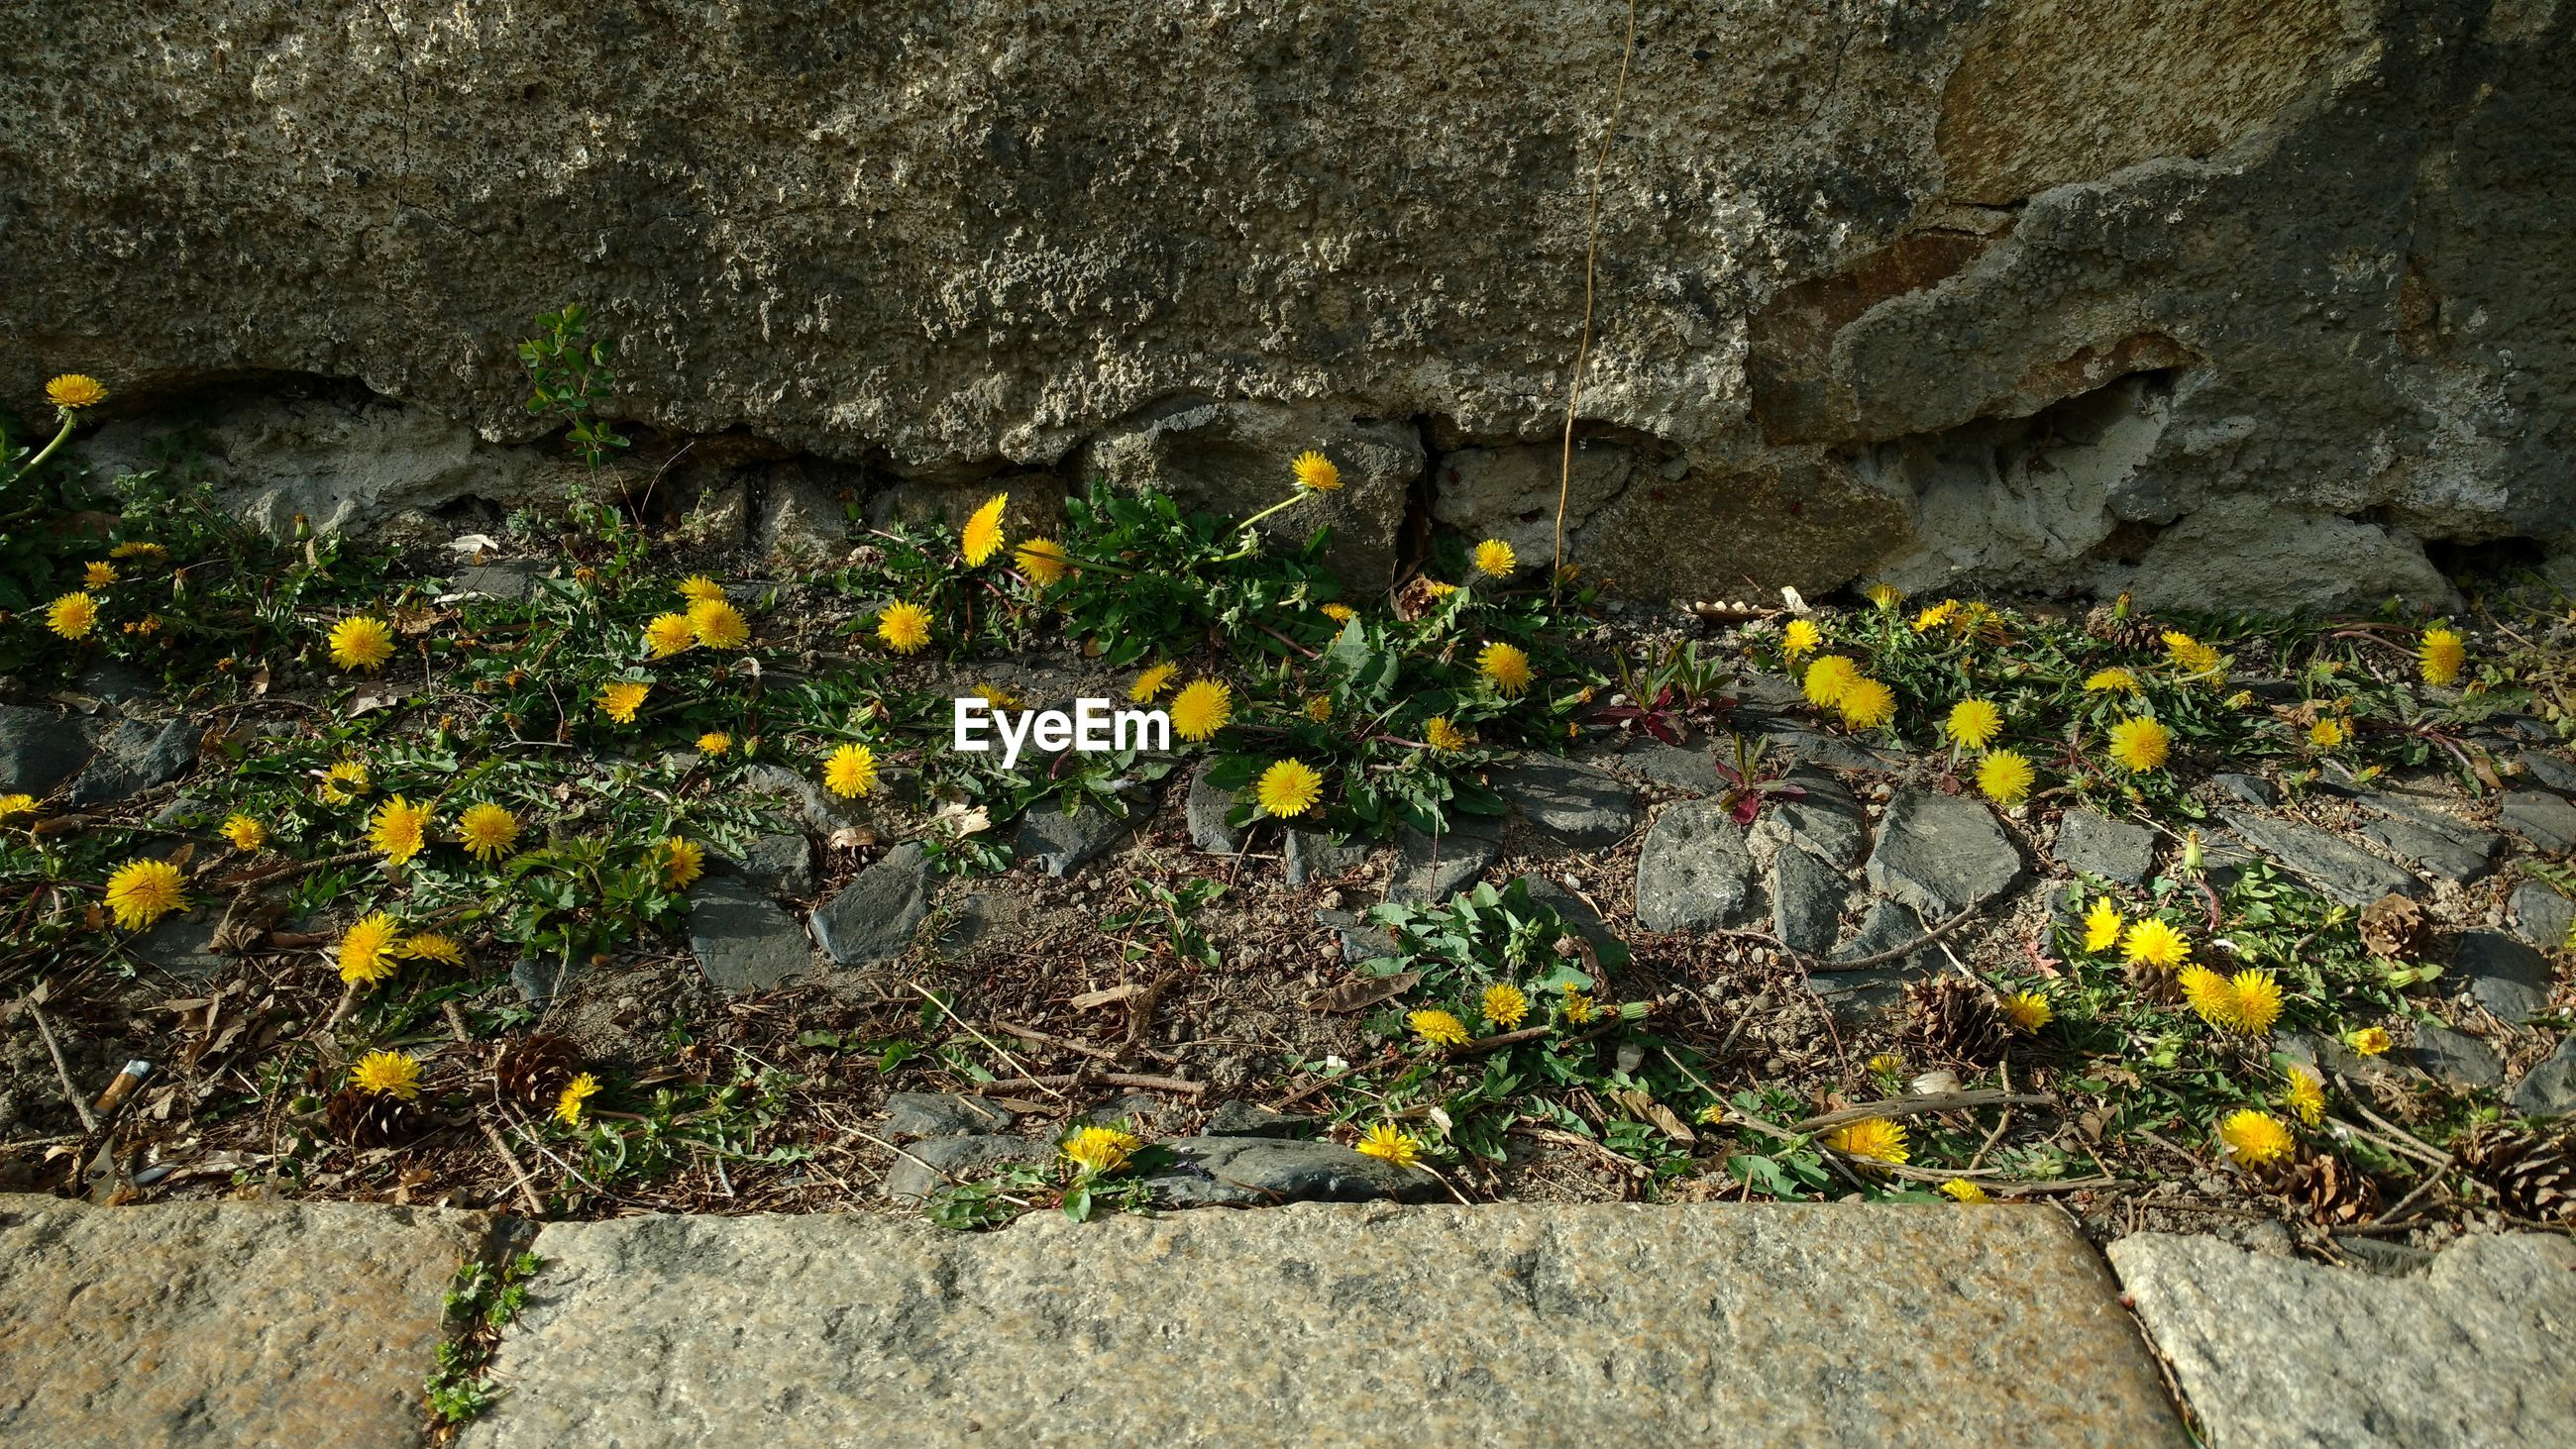 HIGH ANGLE VIEW OF FLOWERING PLANTS ON ROCK